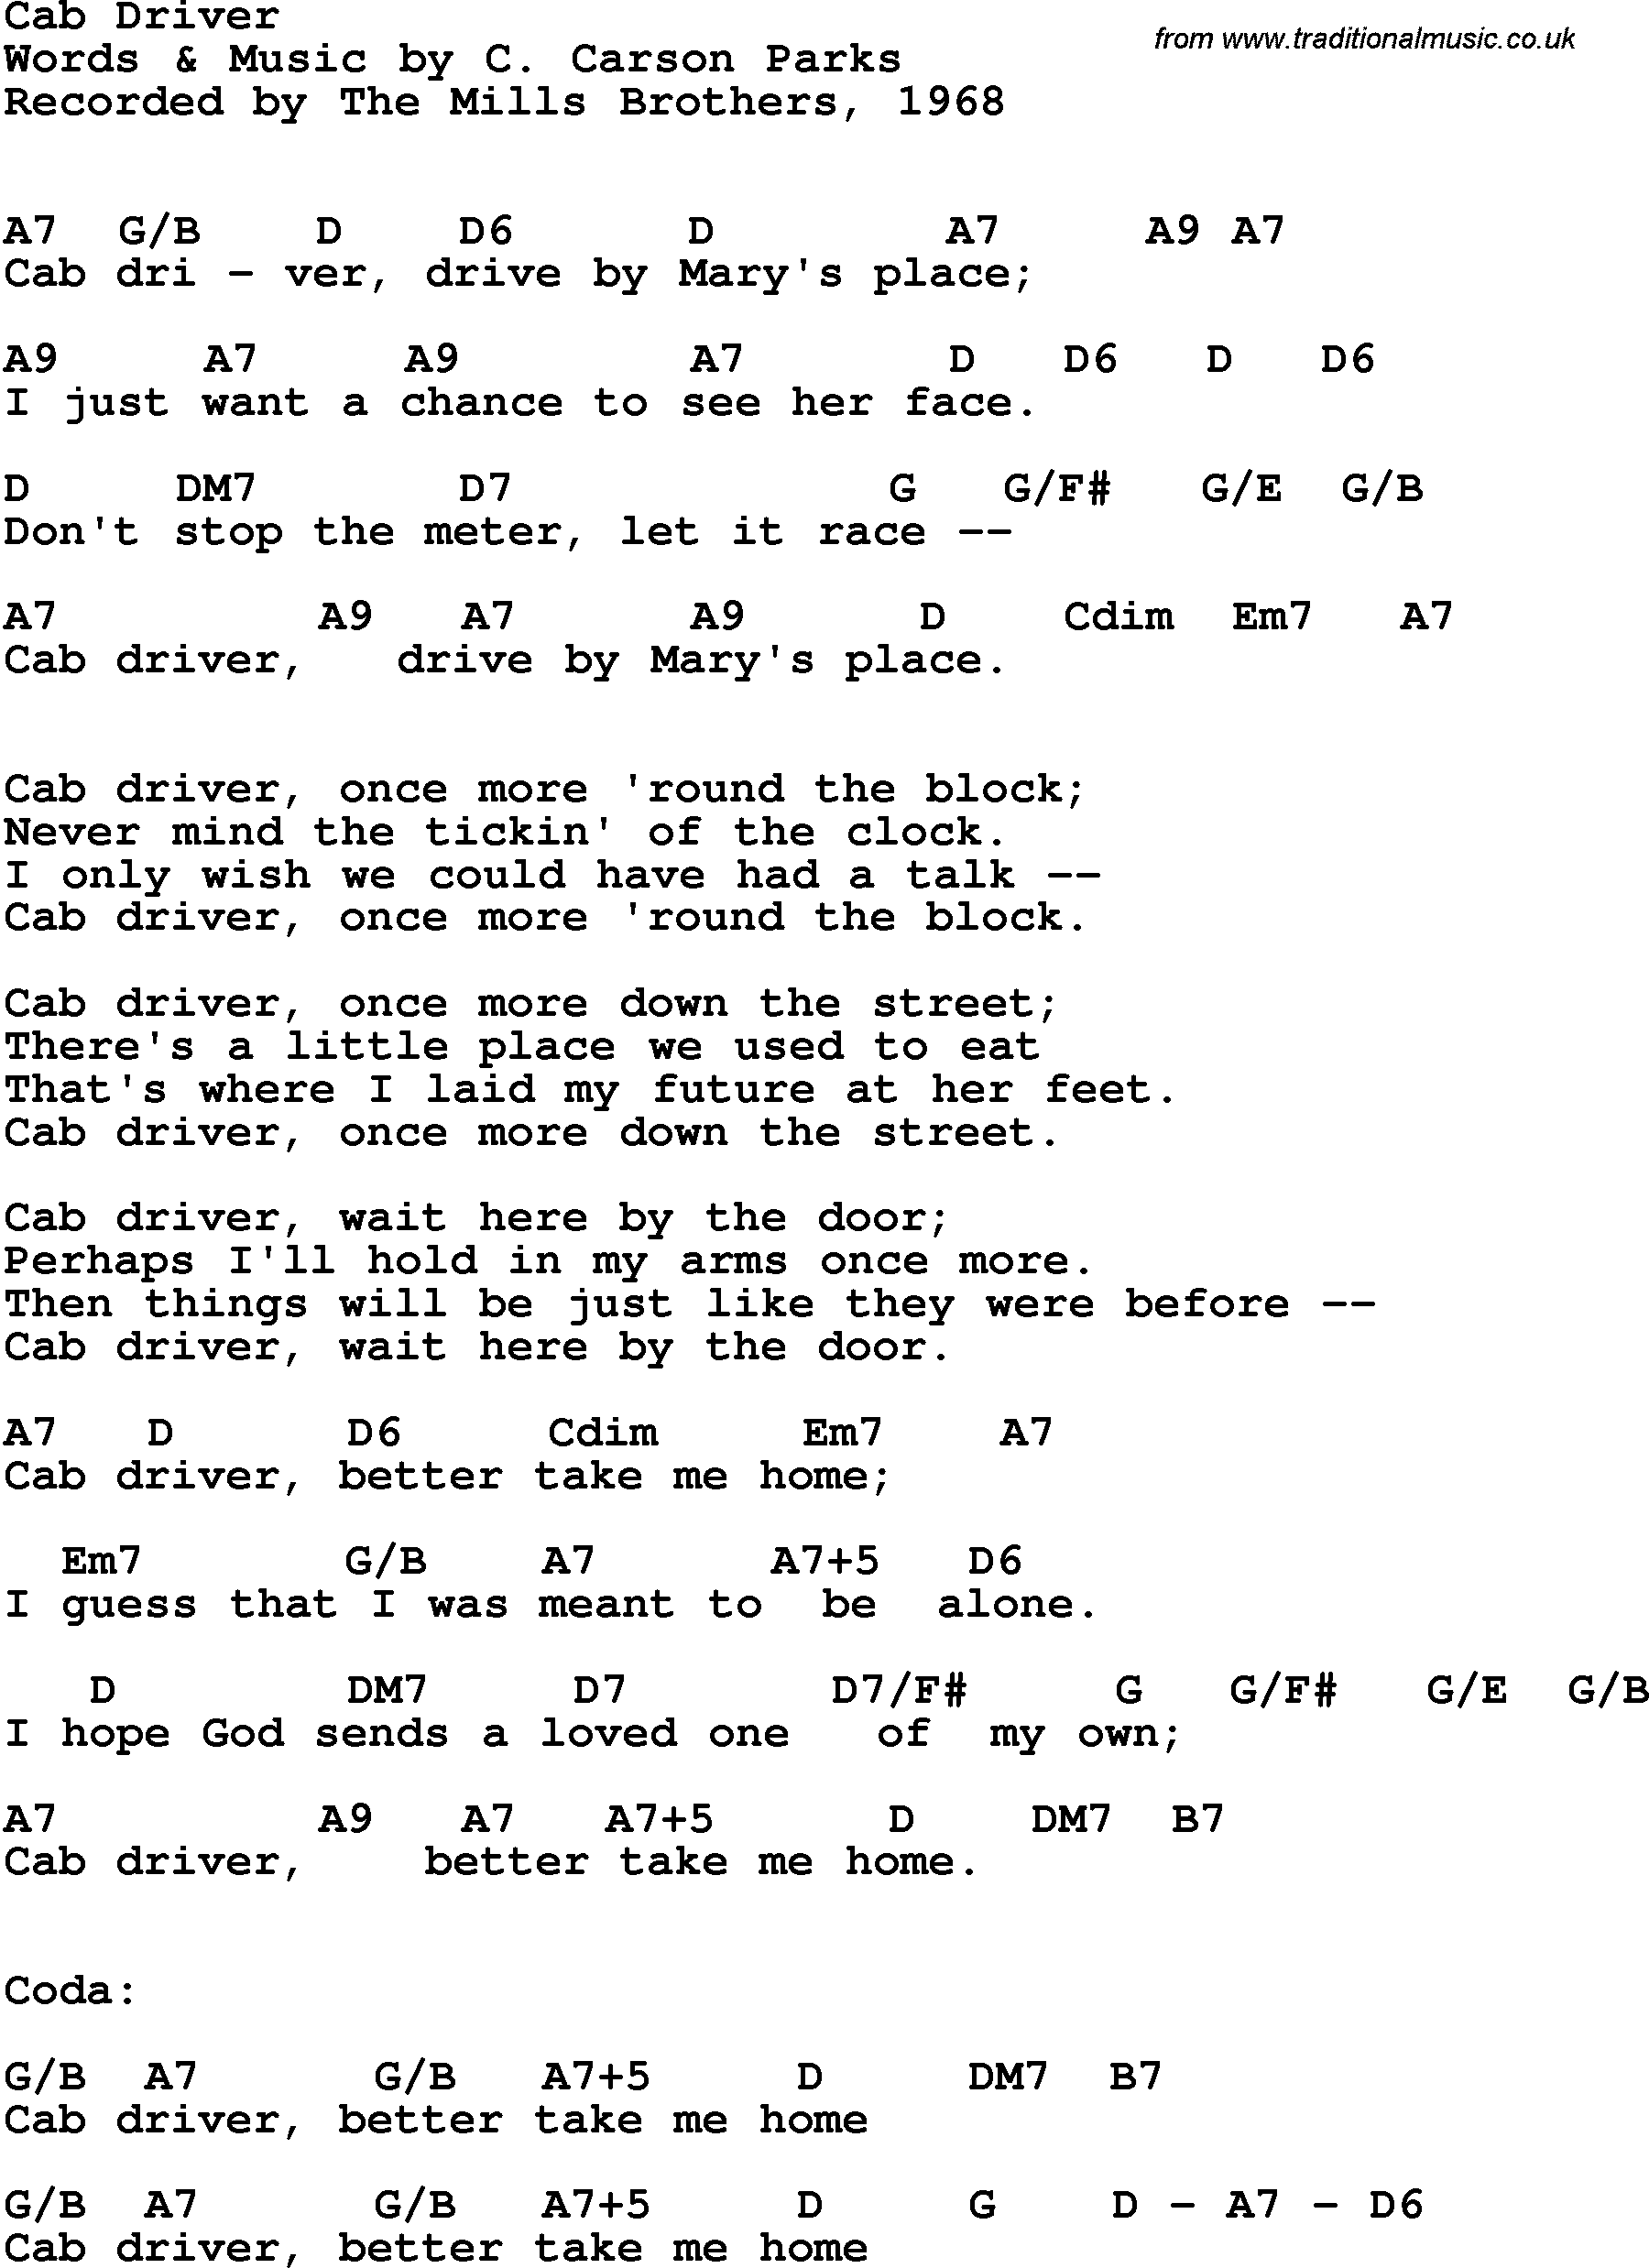 Song Lyrics With Guitar Chords For Cab Driver The Mills Brothers 1968